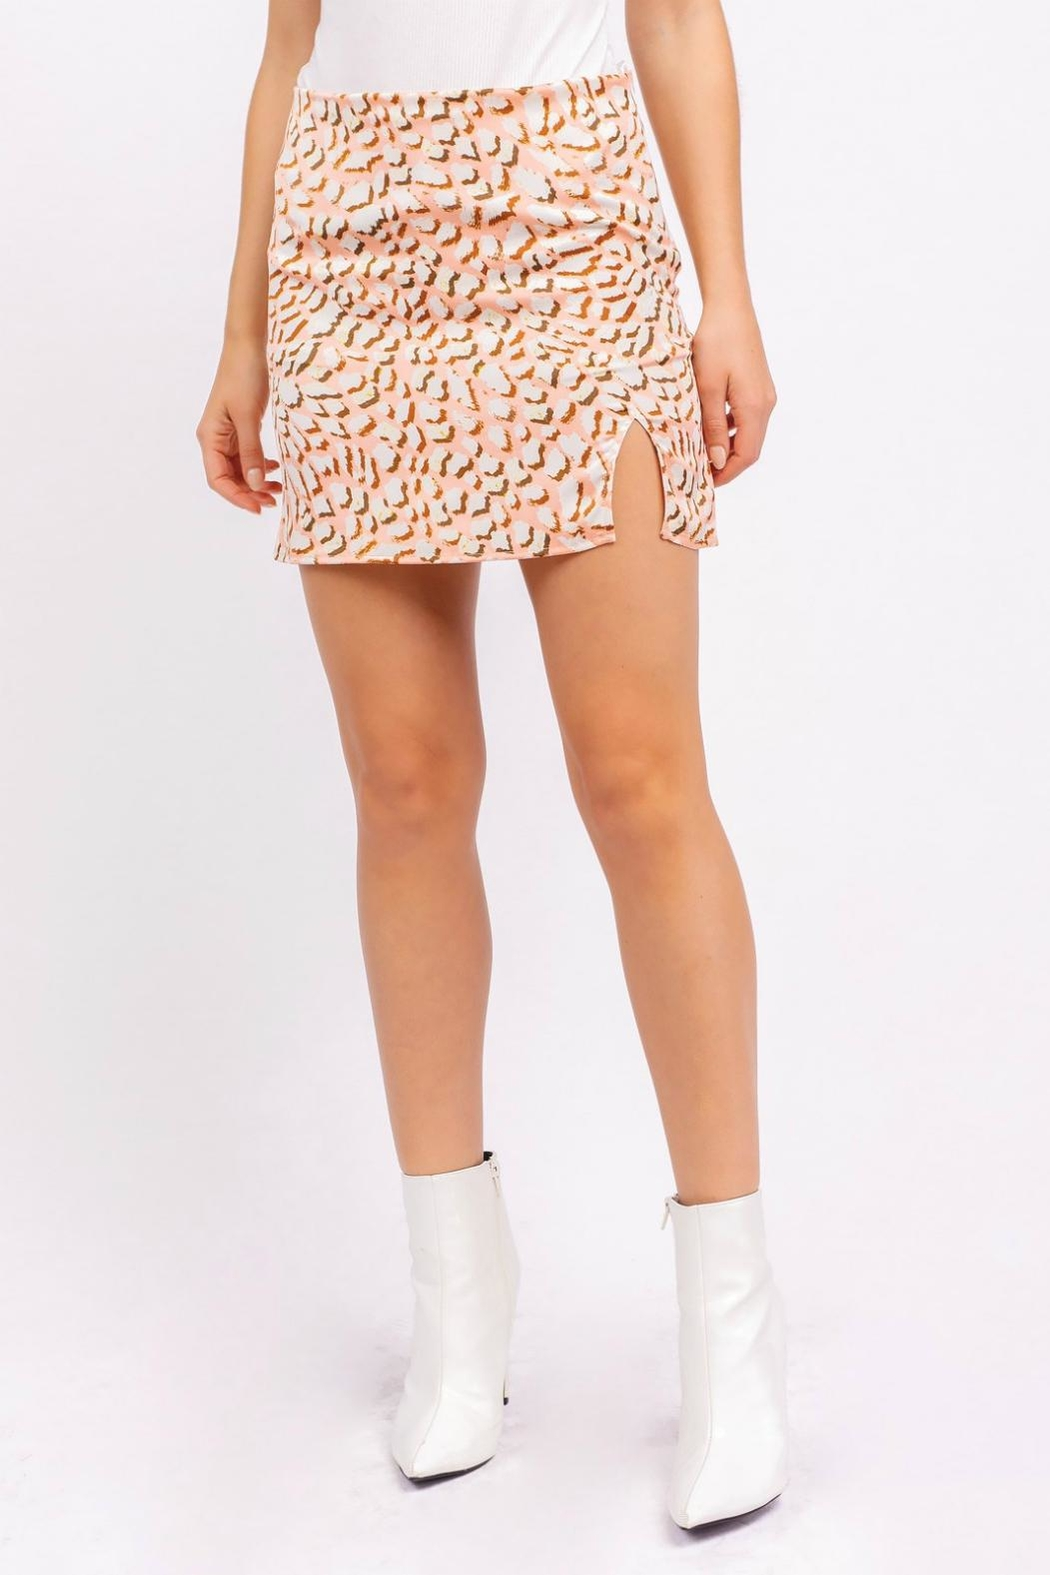 Pretty Little Things Leopard Mini Skirt - Main Image